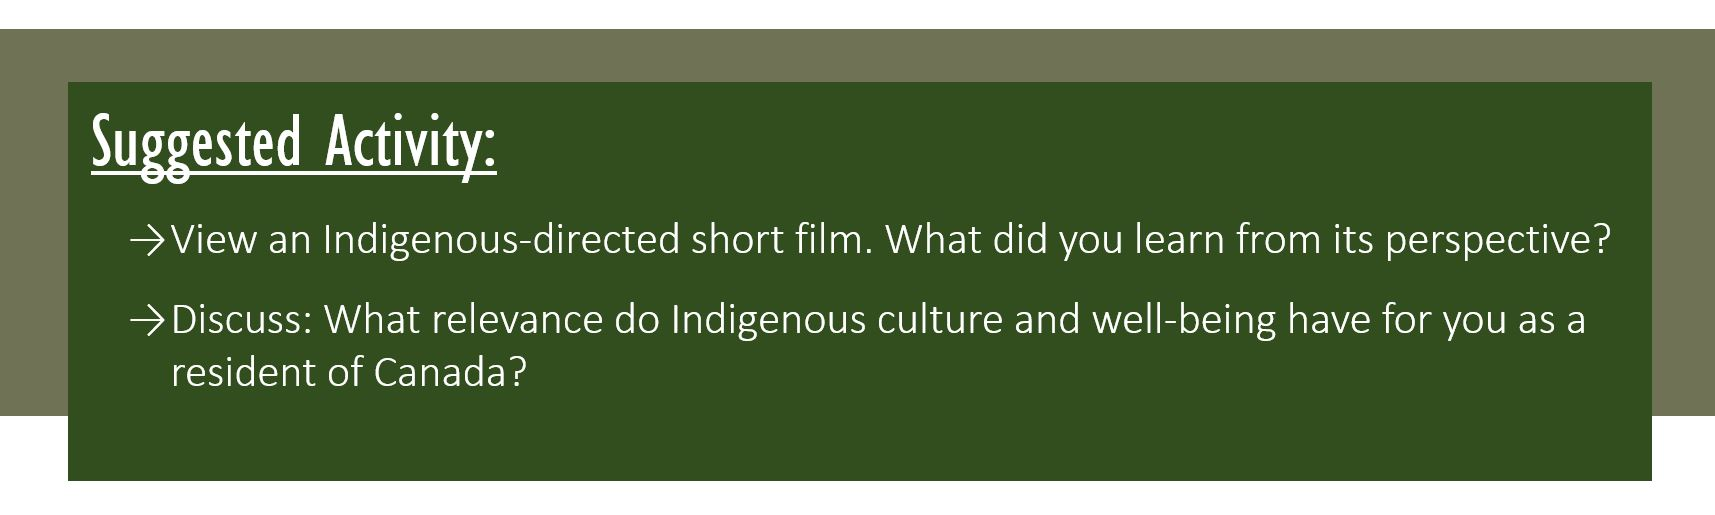 Suggested Activity: View an Indigenous-directed short film. What did you learn from its perspective? Discuss: What relevance do Indigenous culture and well-being have for you as a resident of Canada?